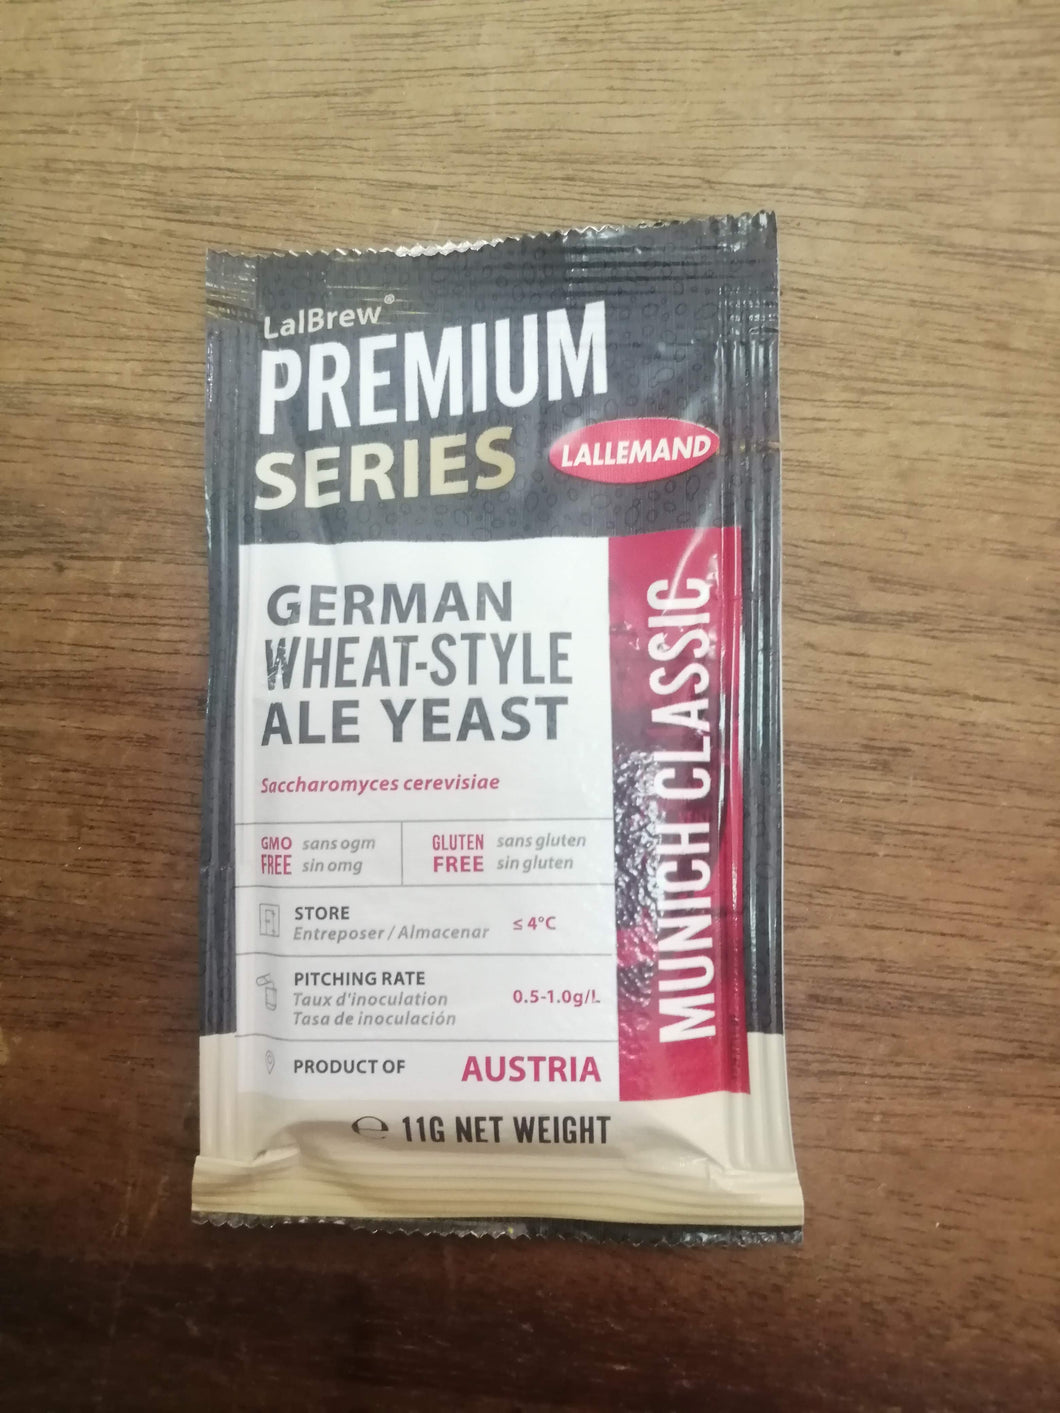 Lallemand Munich Classic German Wheat-Style Yeast (11g)